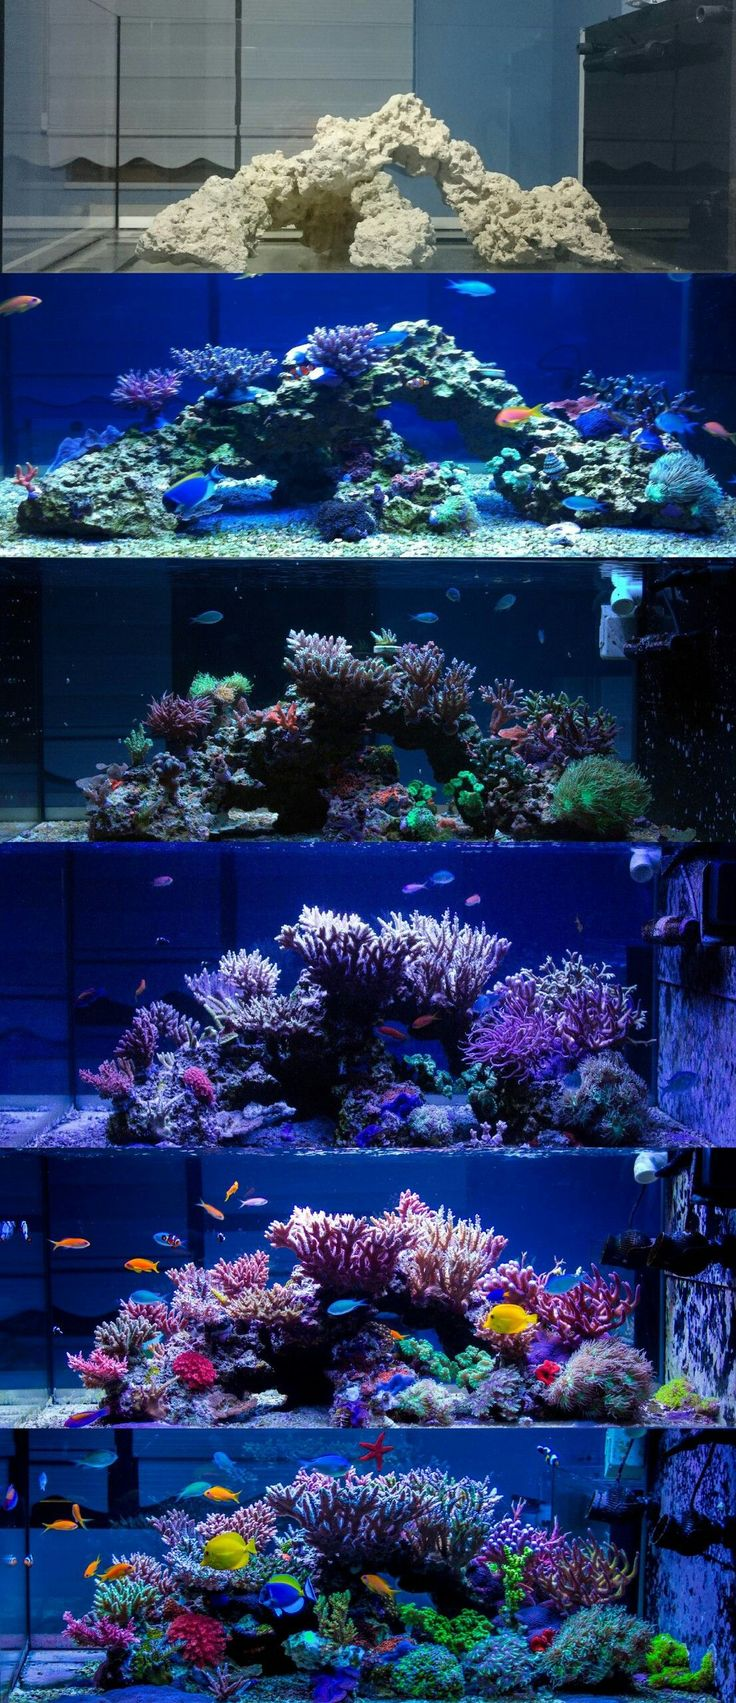 Fish aquarium olx delhi - Aquarium Download Image Fish Tank Quikr